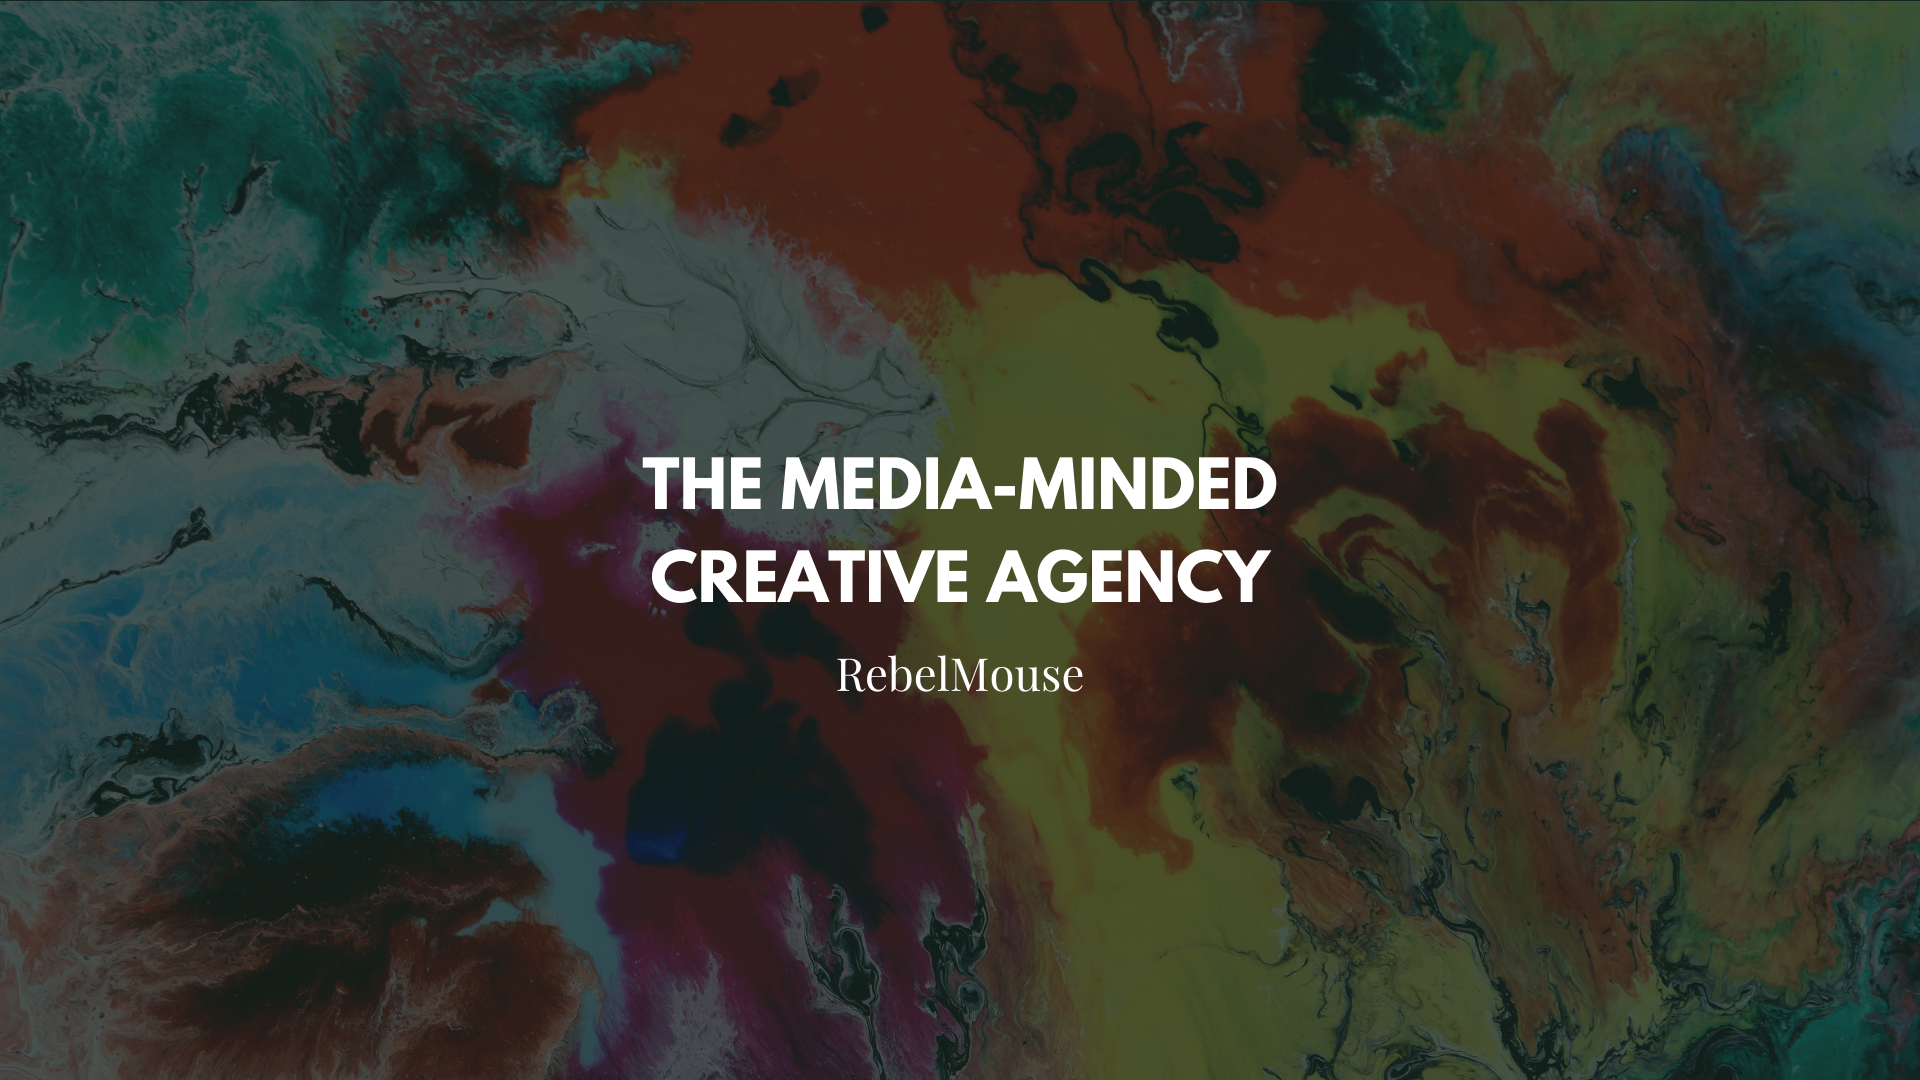 RebelMouse: The Media-Minded Creative Agency